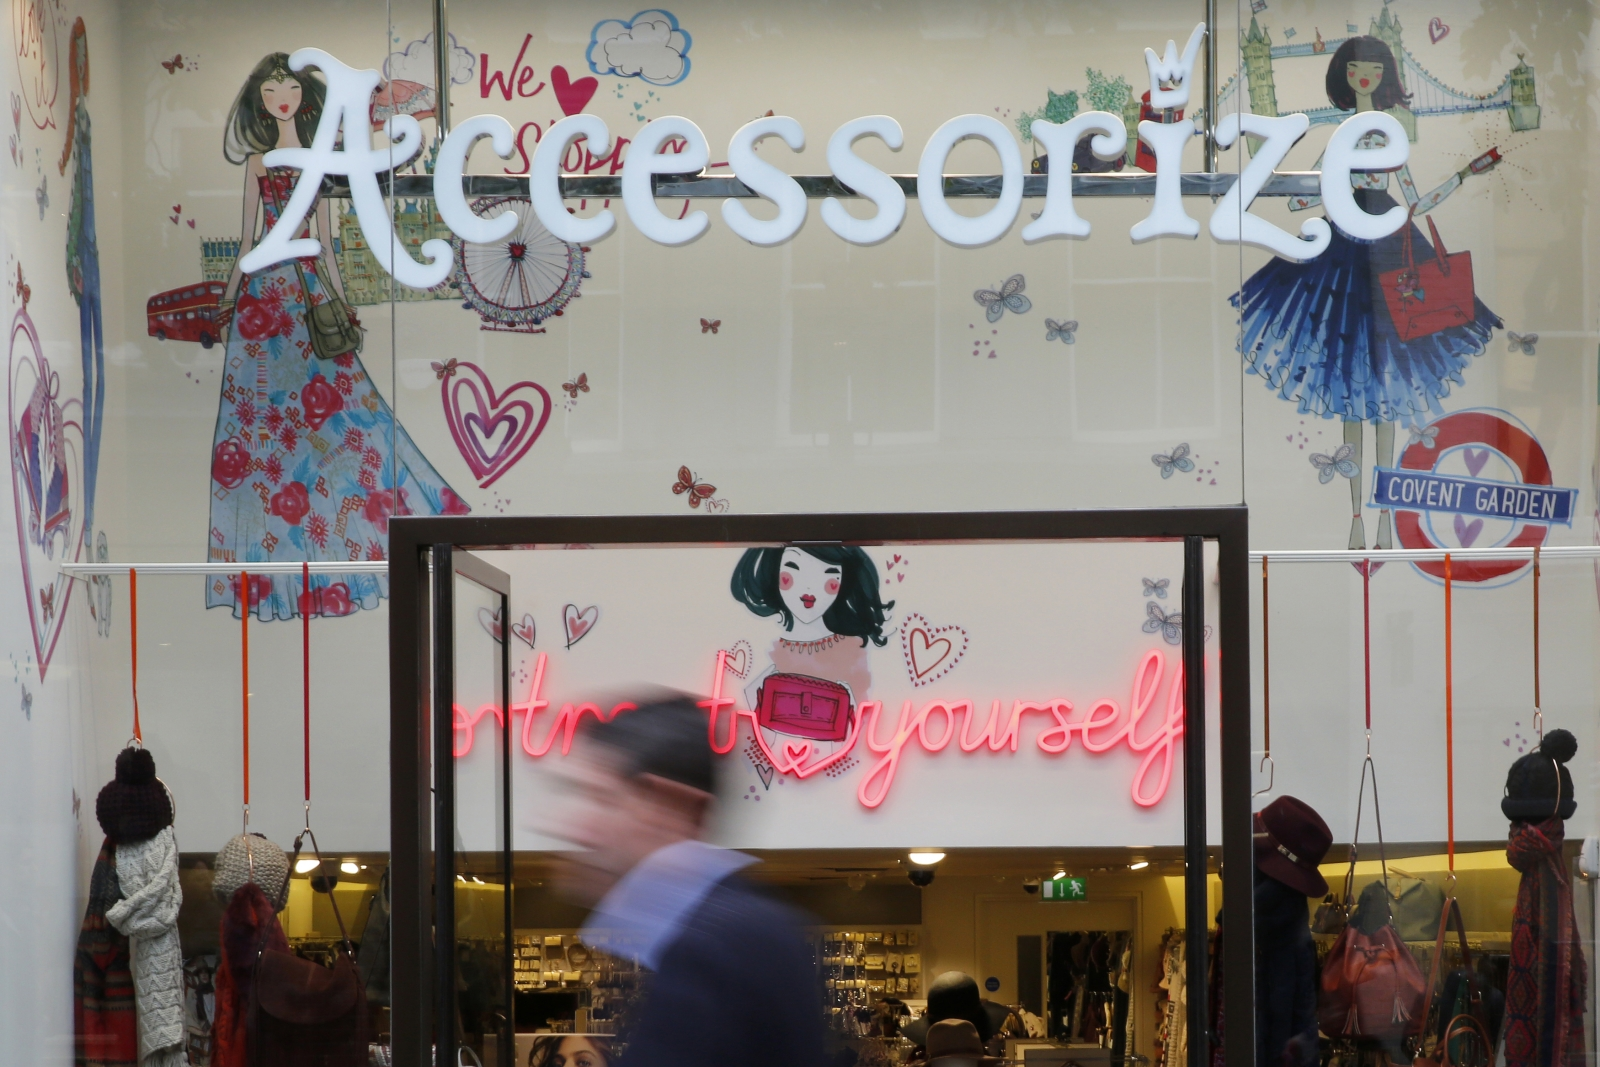 Monsoon Accessorize restructuring could lead to hundreds of job cuts